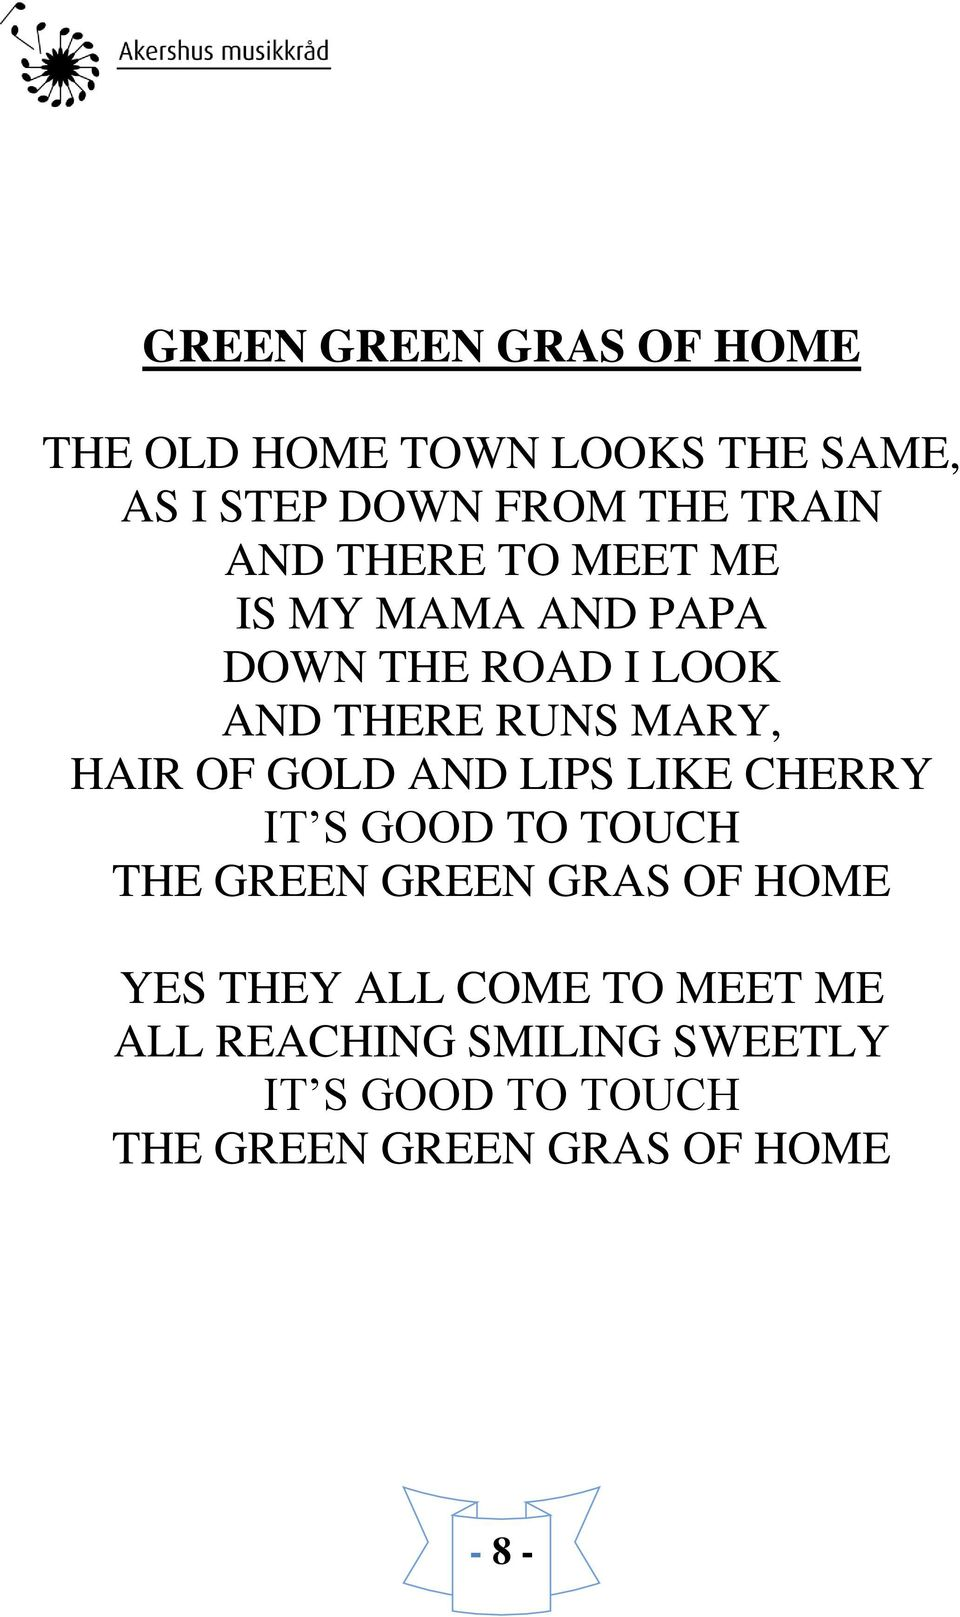 GOLD AND LIPS LIKE CHERRY IT S GOOD TO TOUCH THE GREEN GREEN GRAS OF HOME YES THEY ALL